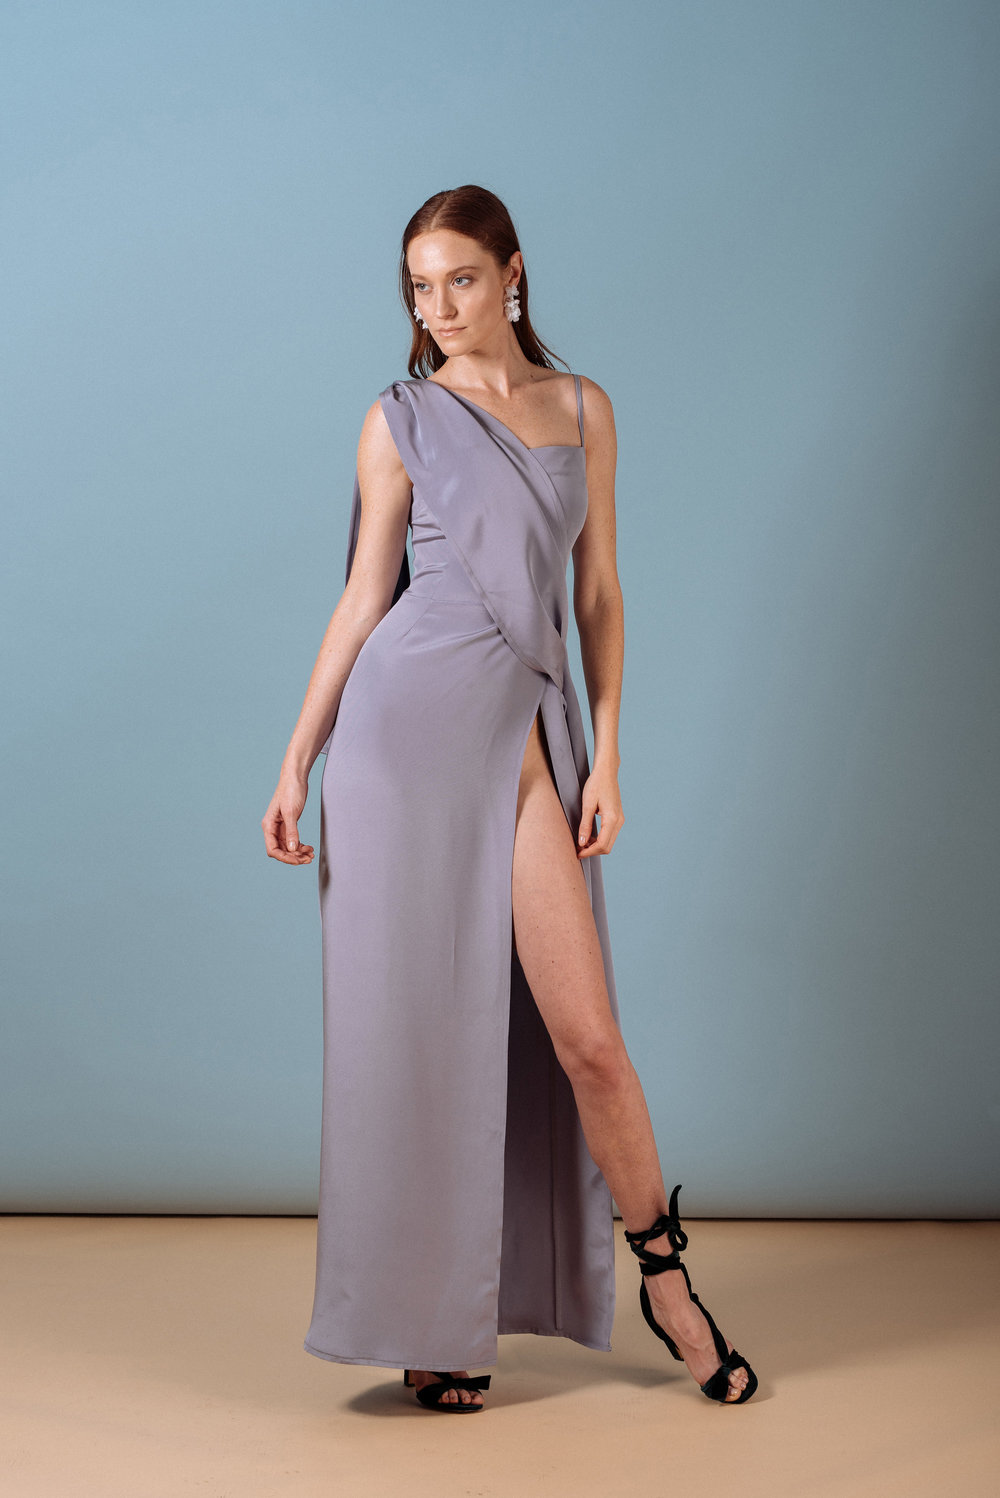 Look 9: #418 Cleo Draped Gown in Lavender (also in Emerald)